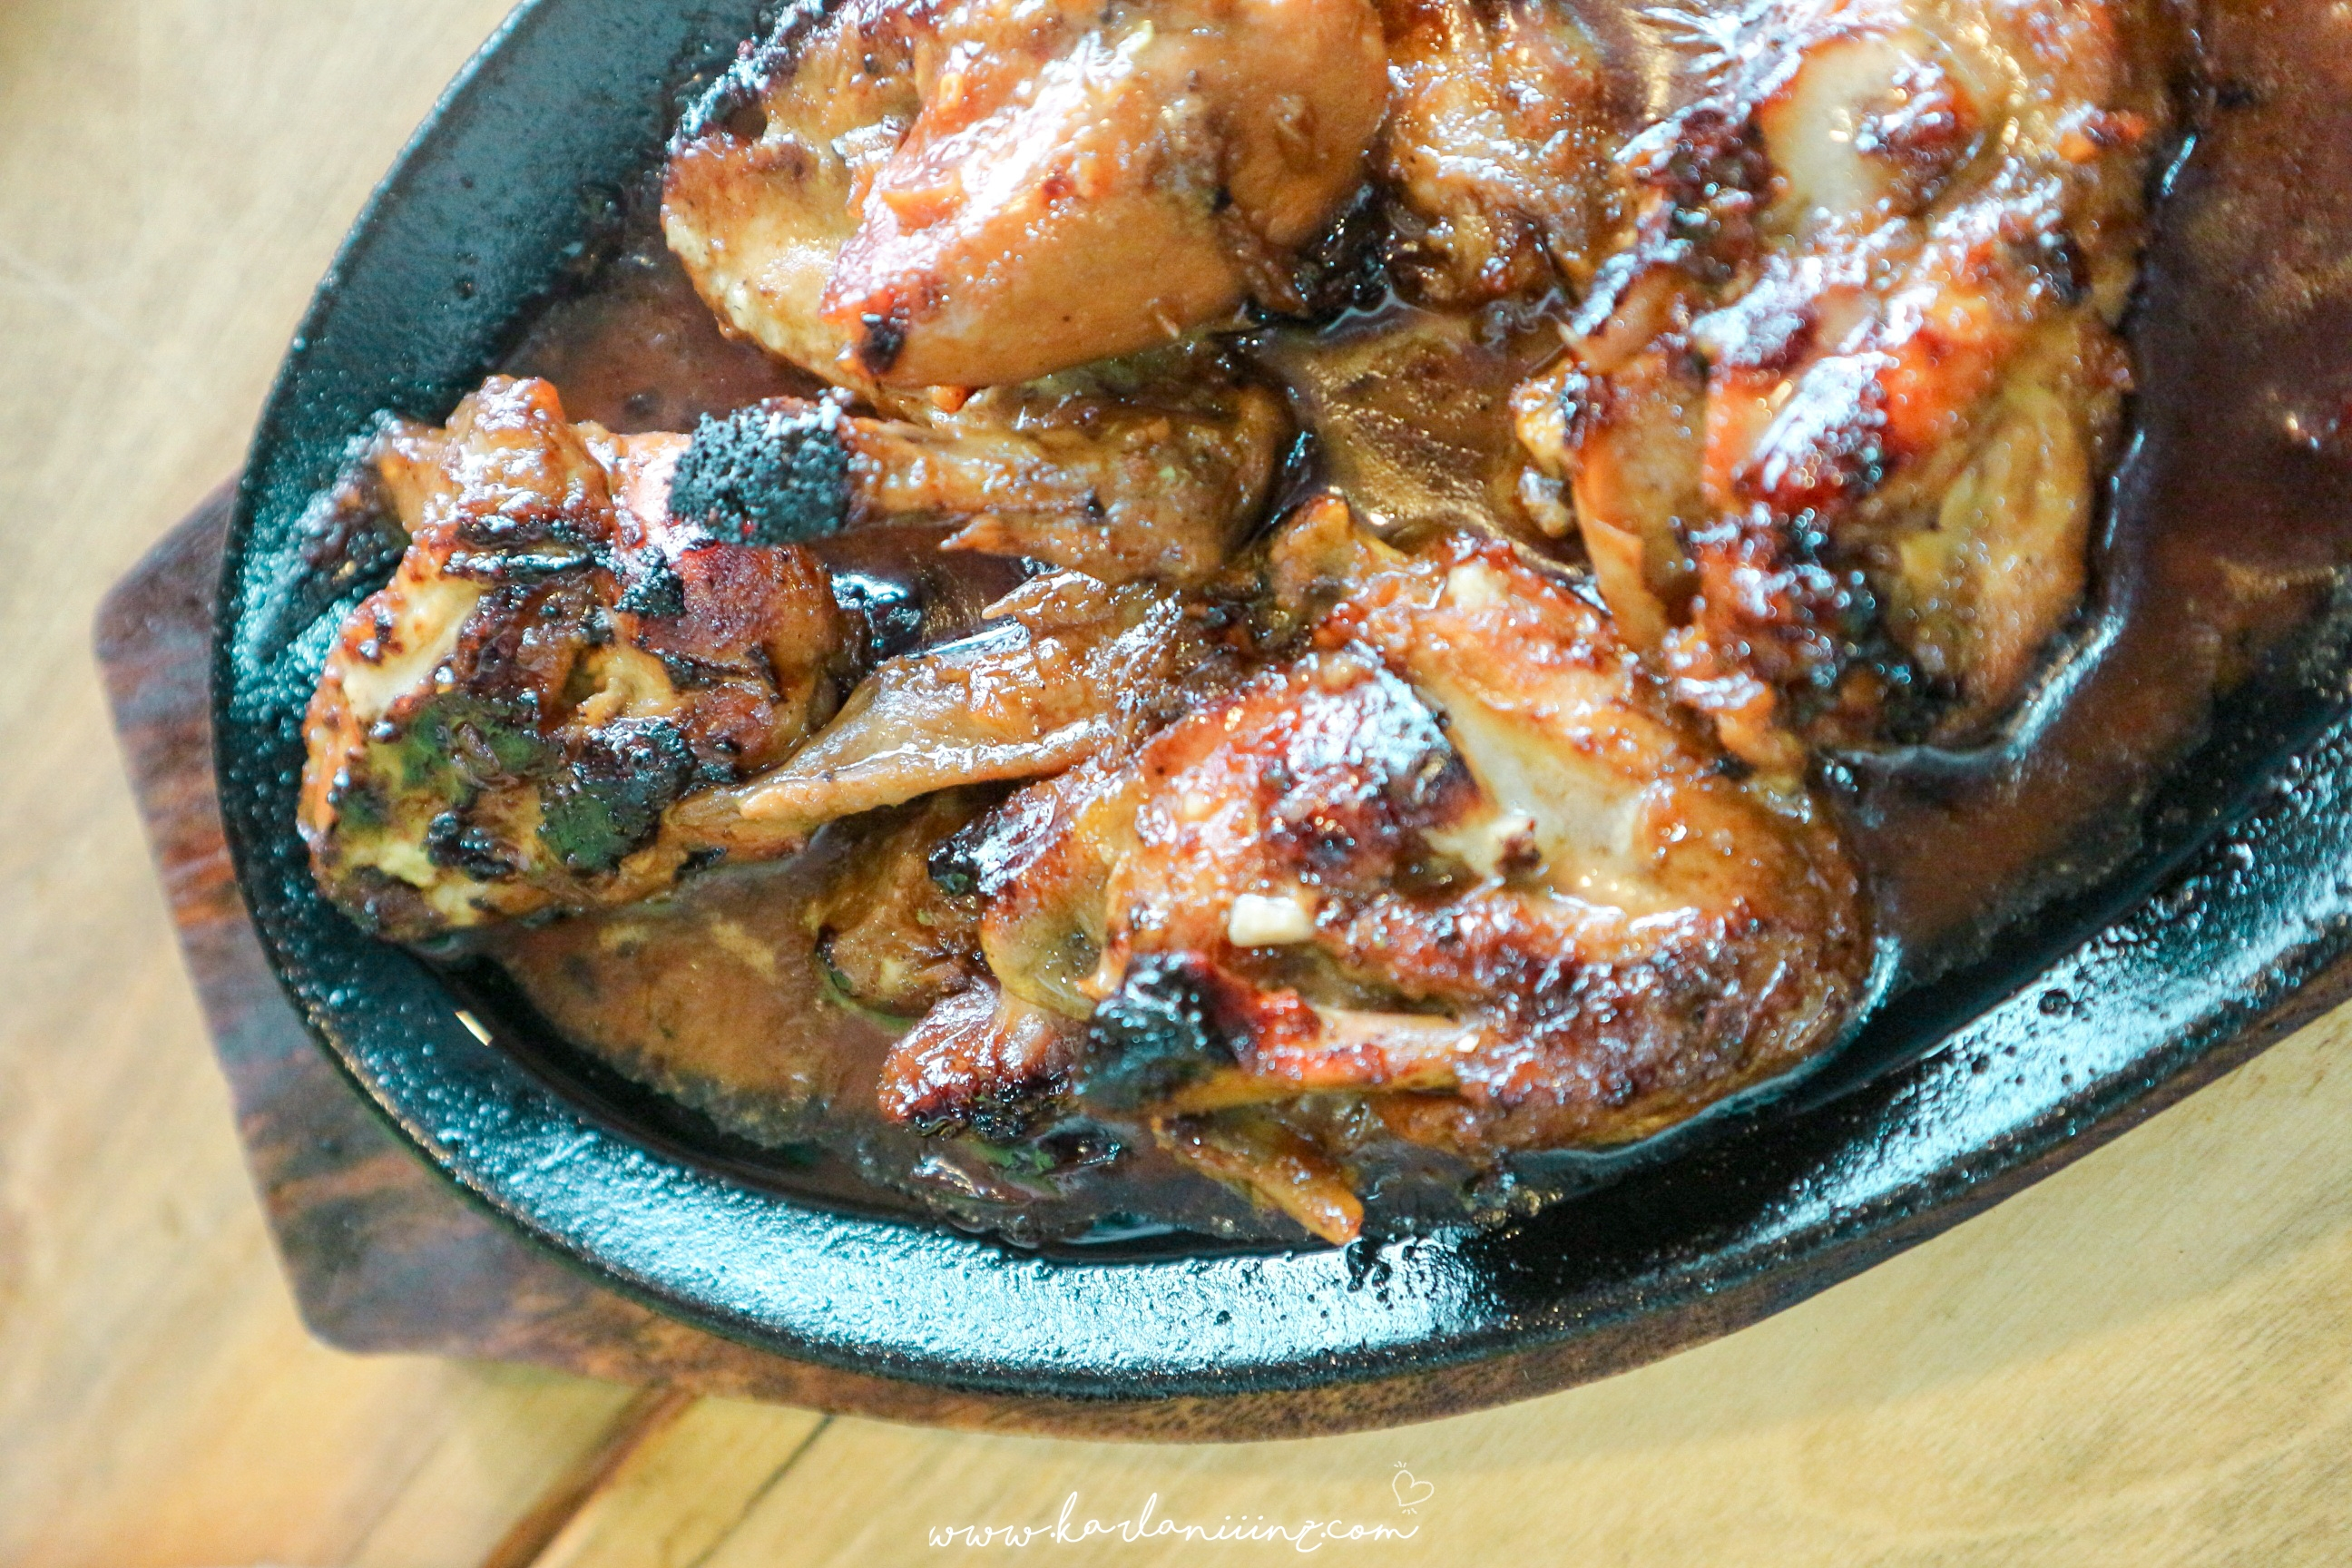 amelito's sizzling house qc